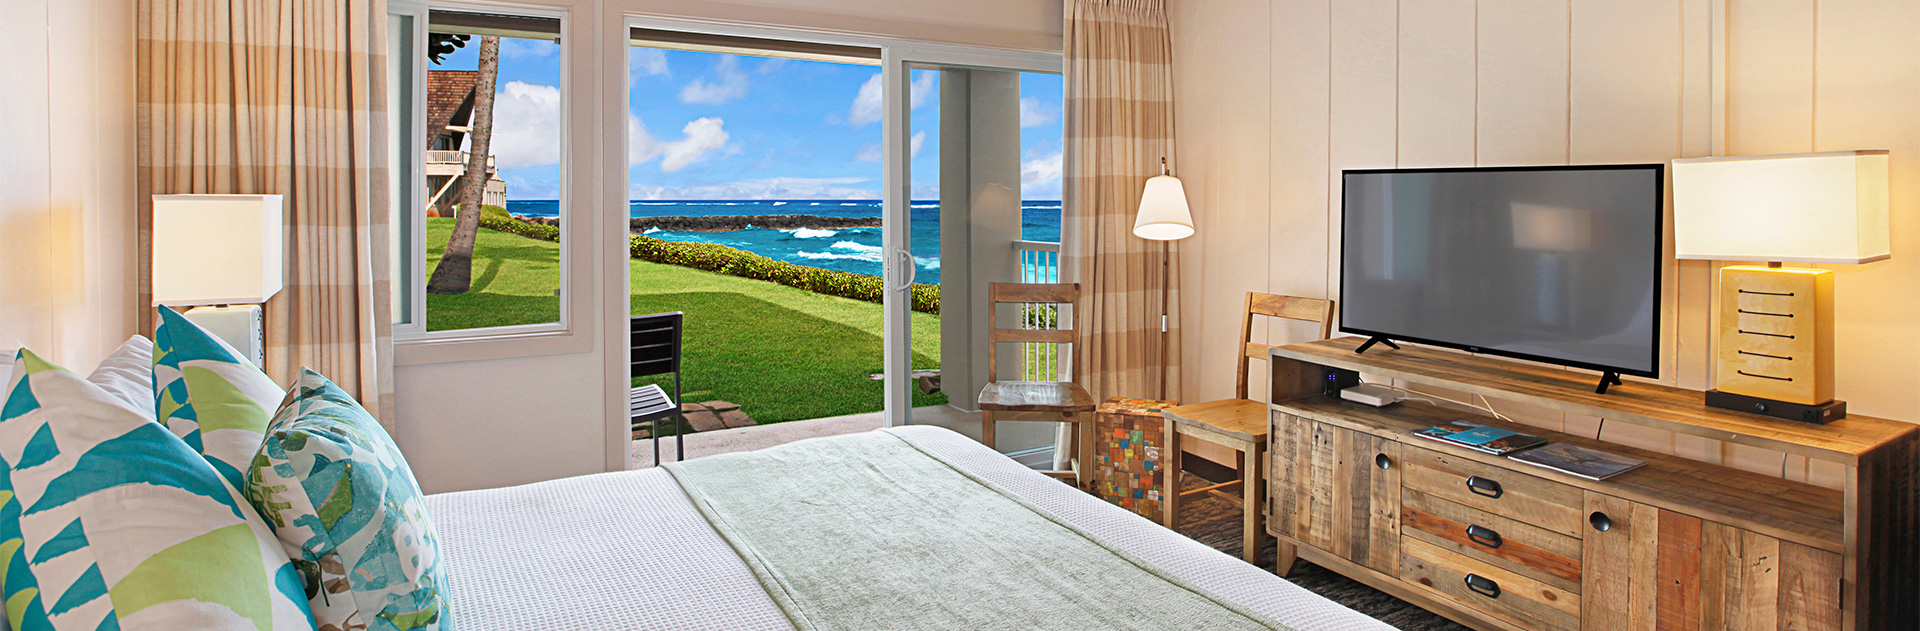 experience The ISO, Kauai's newest boutique hotel